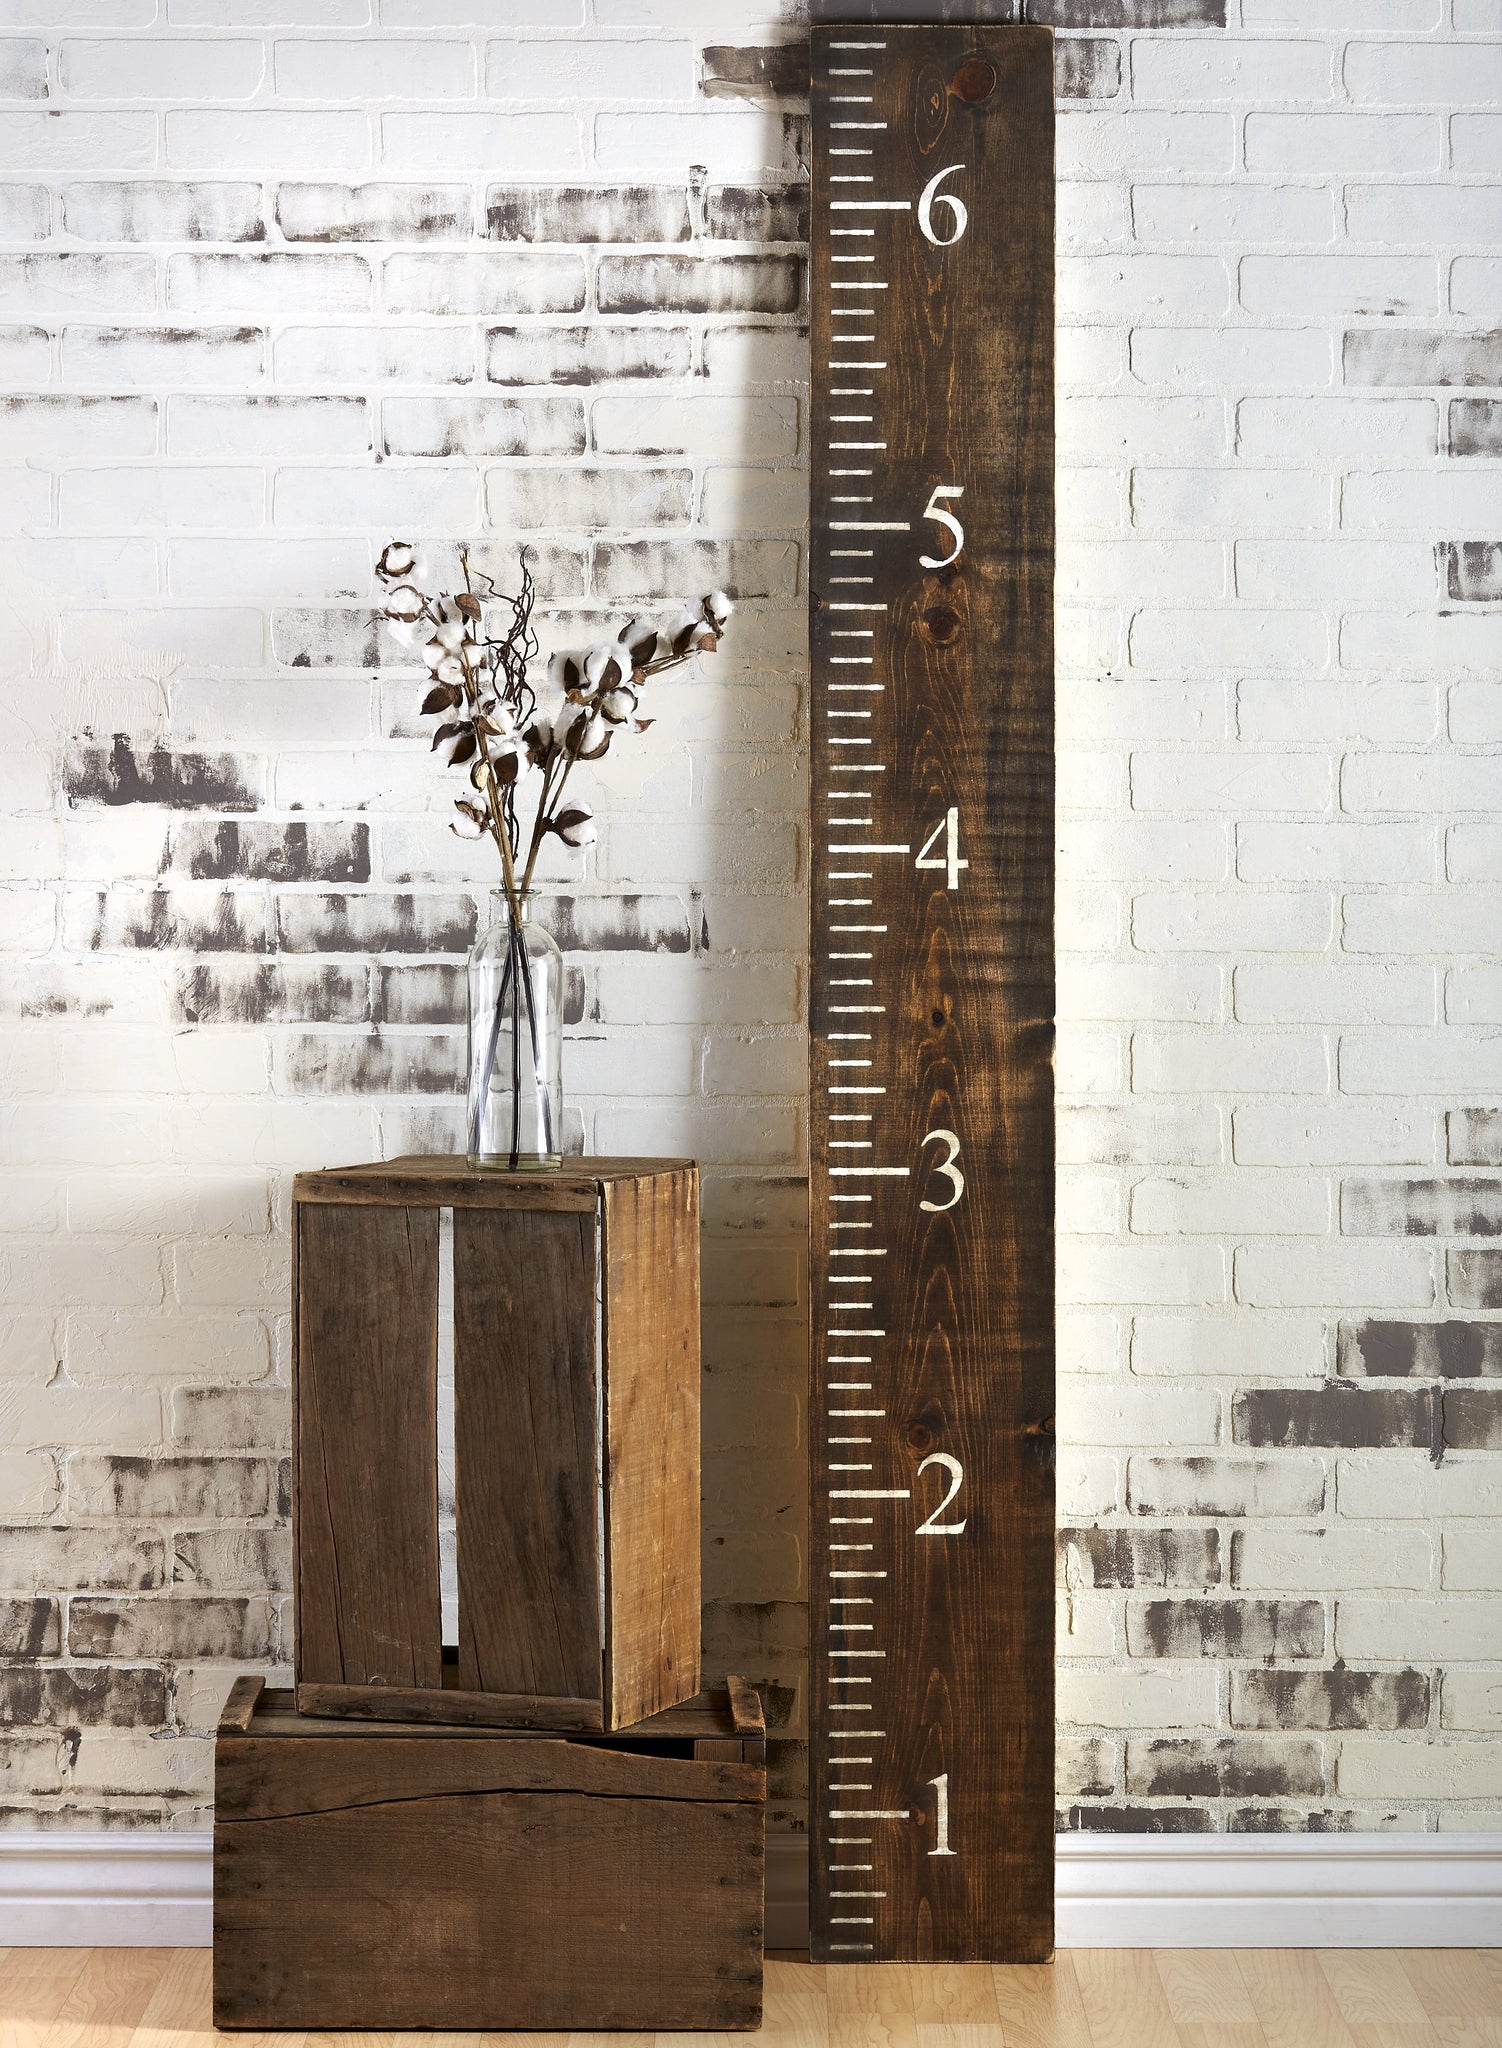 DIY Farmhouse Growth Chart Ruler Reusable Stencil | 6ft foot ruler template Pottery barn inspired wood ruler wooden